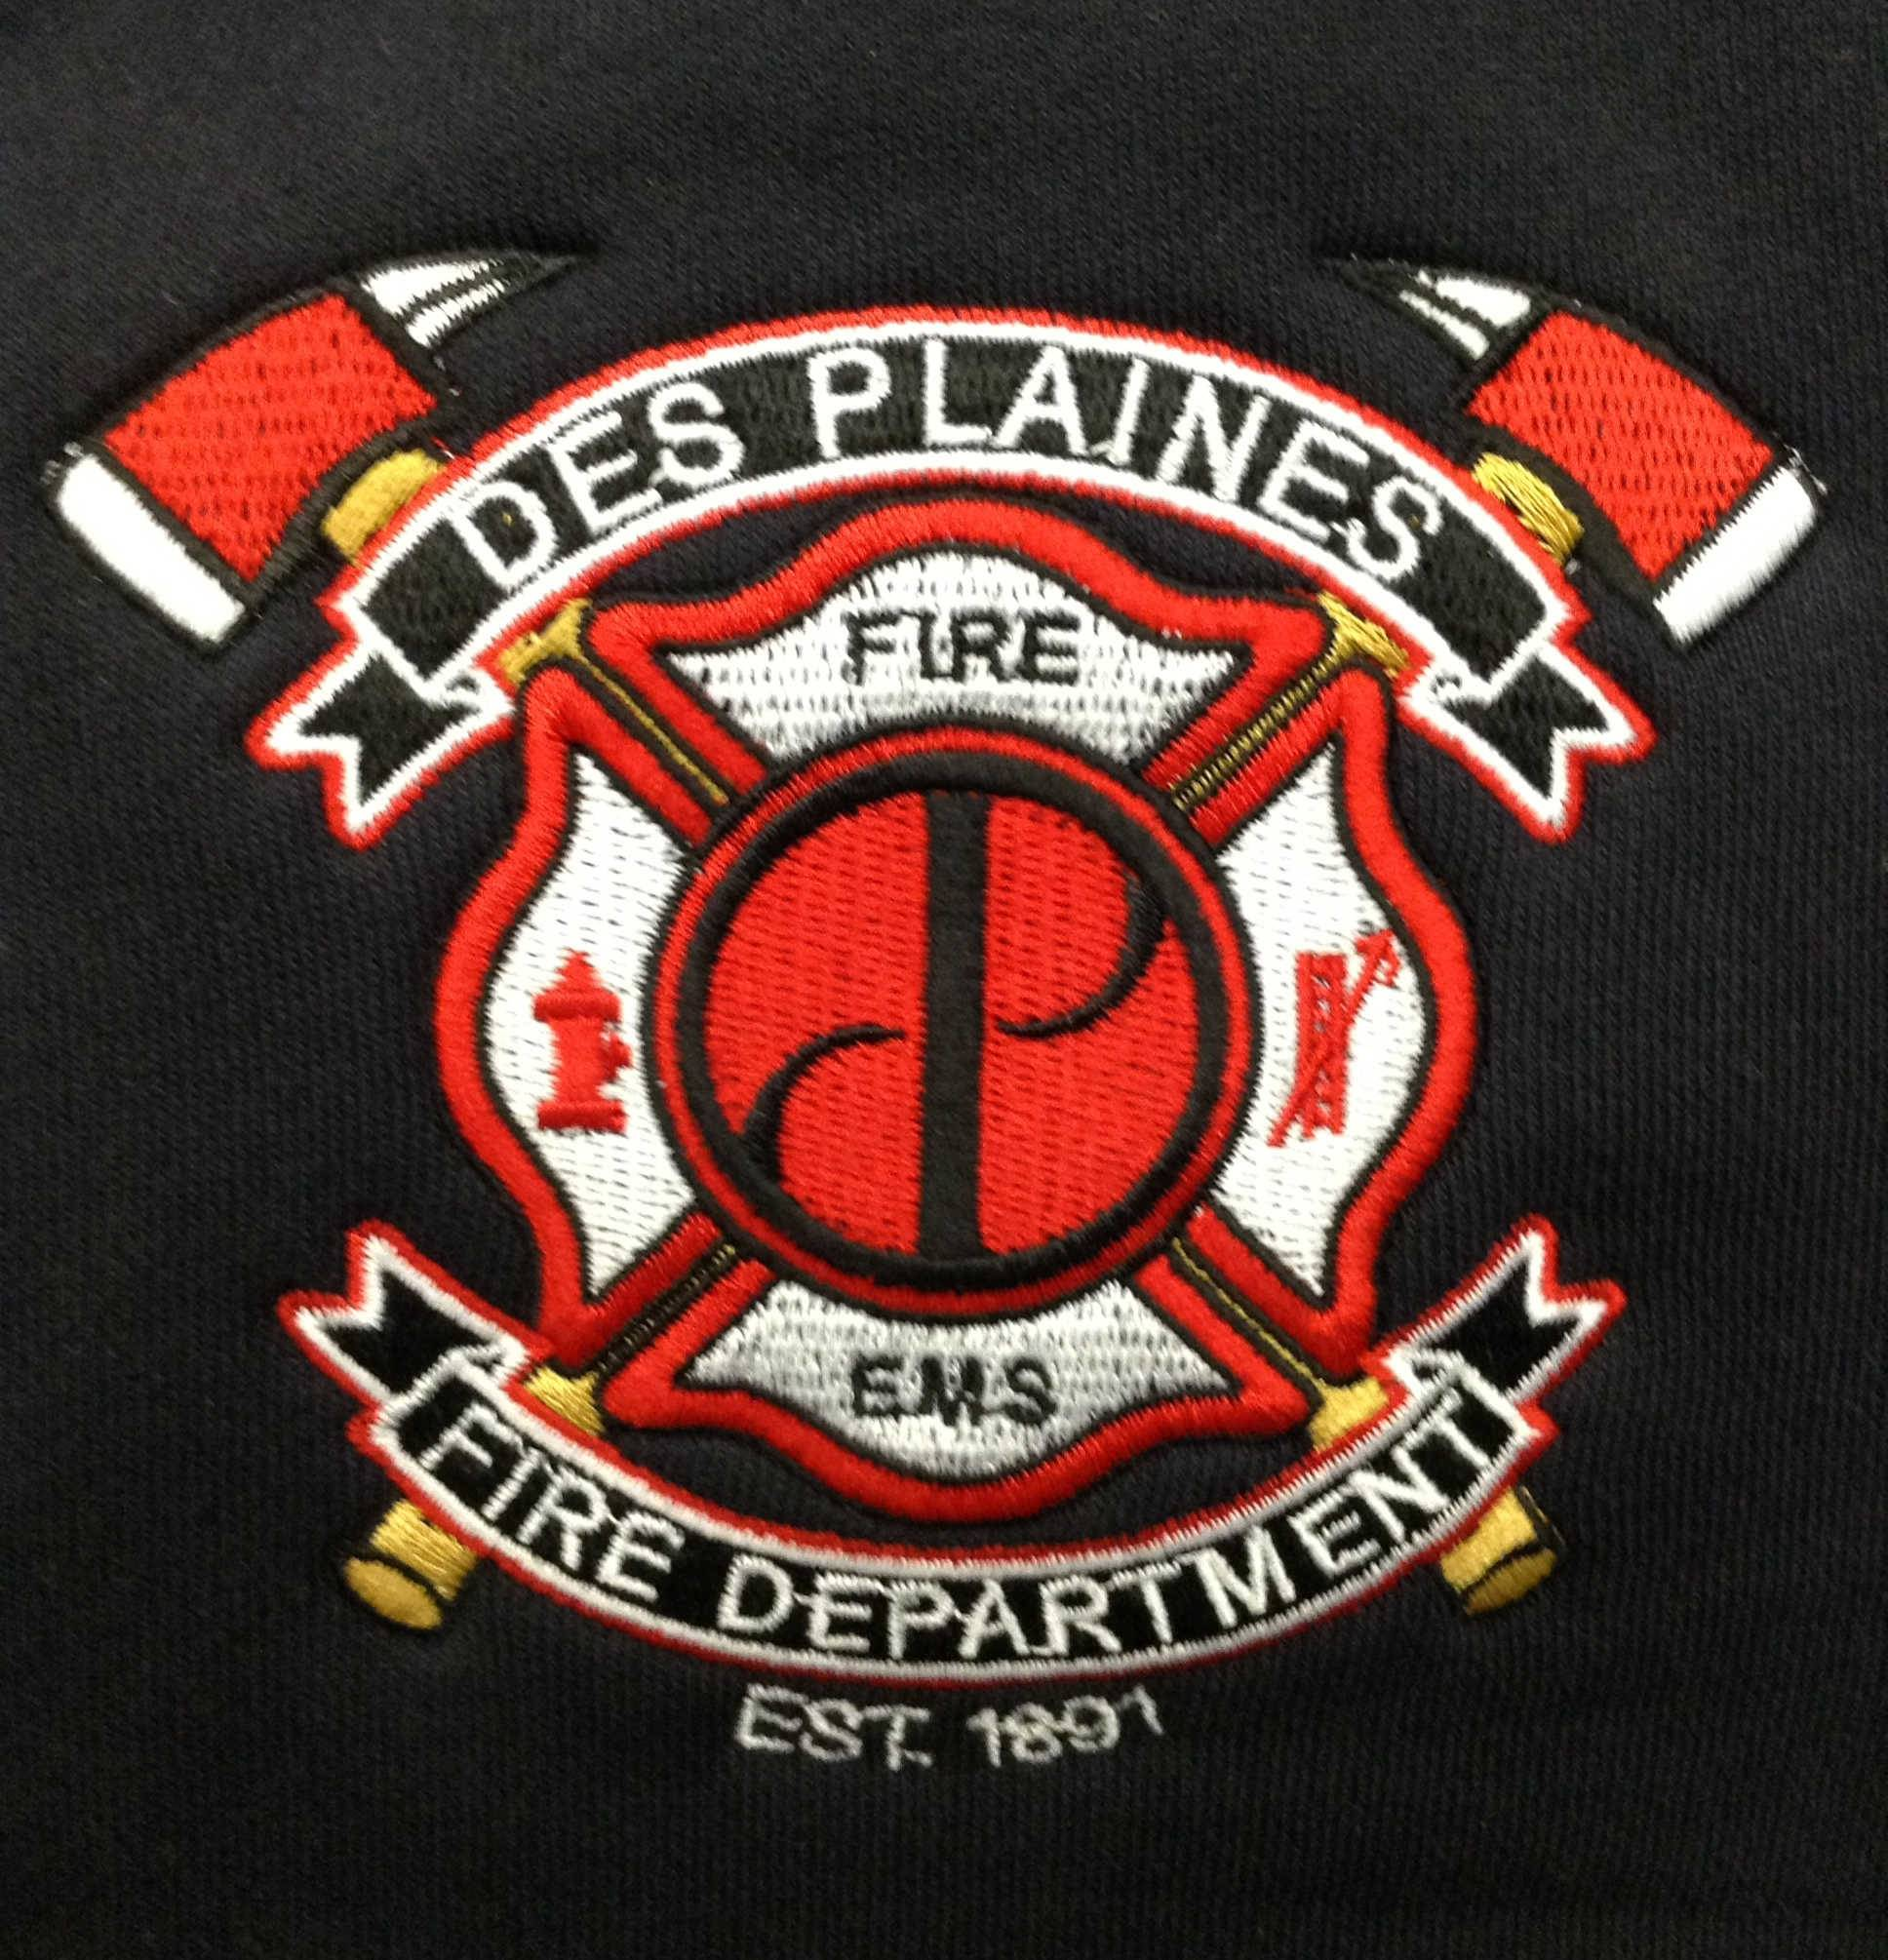 The family of Des Plaines firefighter critically injured in a motorcycle crash Sunday has removed him from life support, Des Plaines Fire Chief Alan Wax and McHenry Township Fire Protection District Chief Tony Huemann said in a joint statement Tuesday.